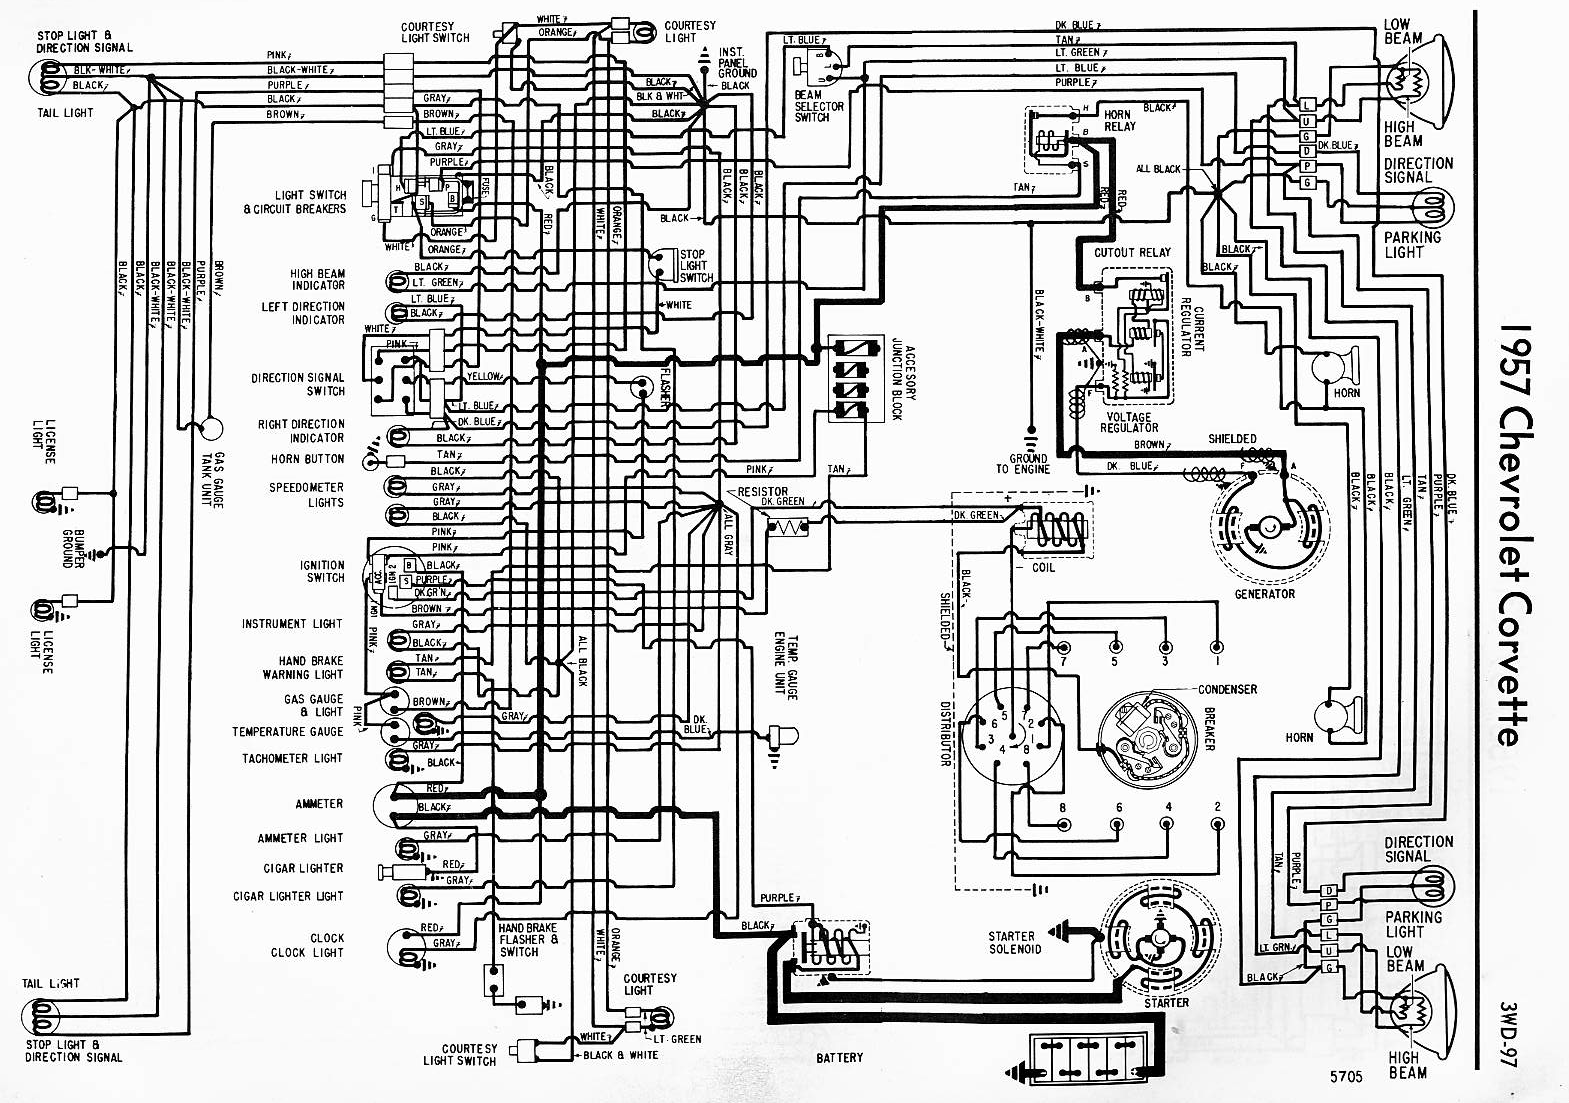 1966 Corvette Wiring Diagram Free Great Design Of 57 Lincoln Premiere 1970 Harness Schematics Diagrams U2022 Rh Schoosretailstores Com 1967 Dash Schematic